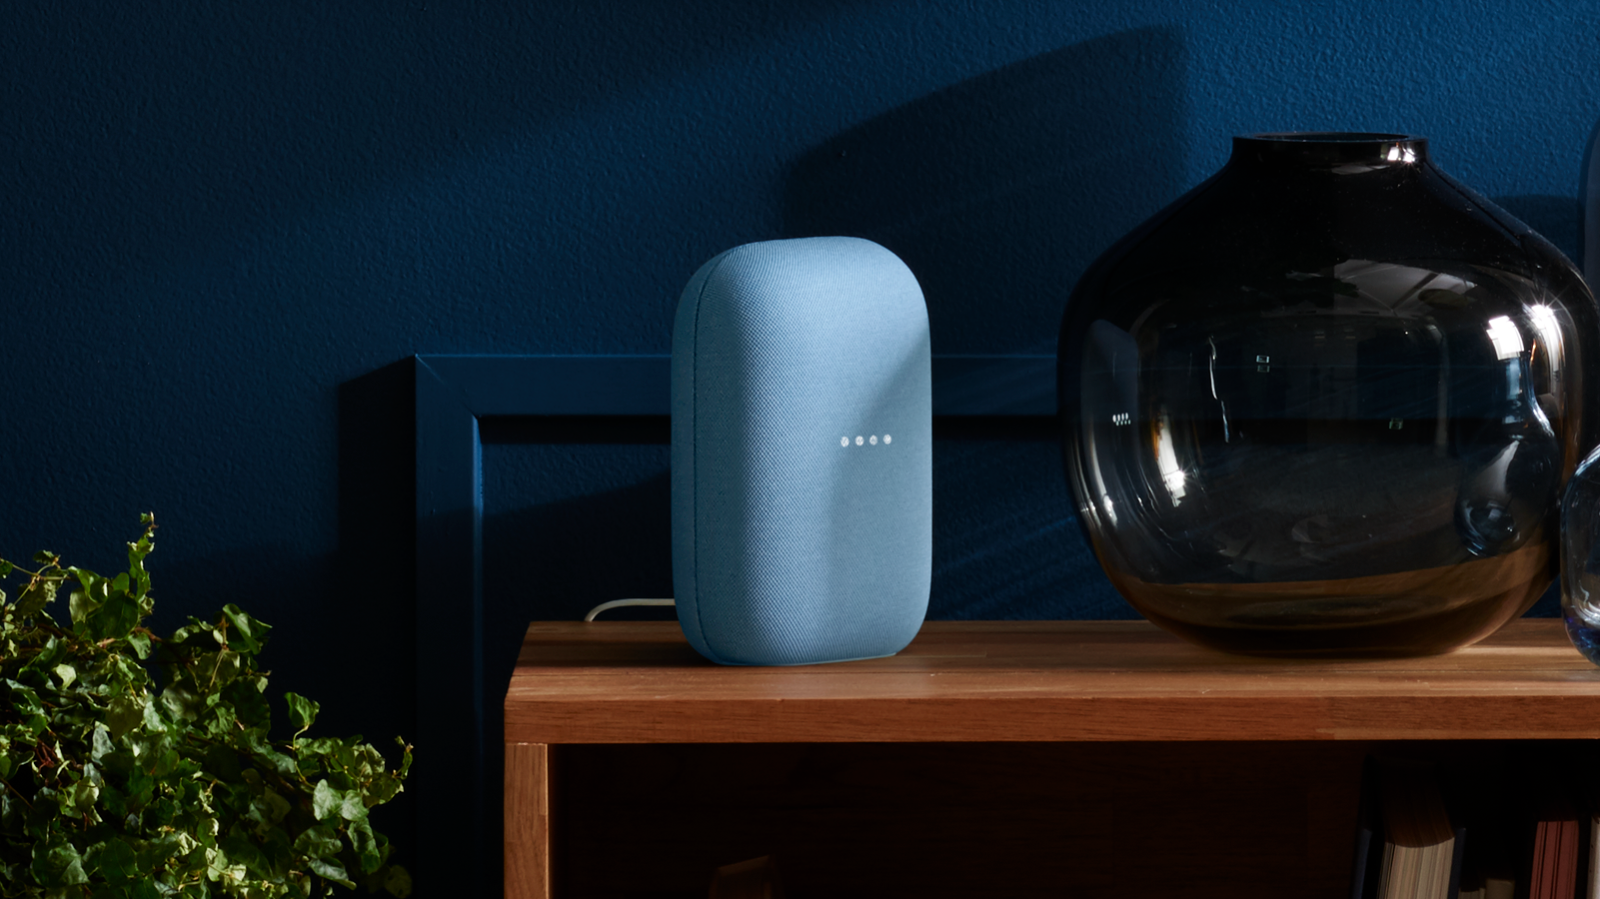 Google's Nest Smart Speaker is leaking into the picture